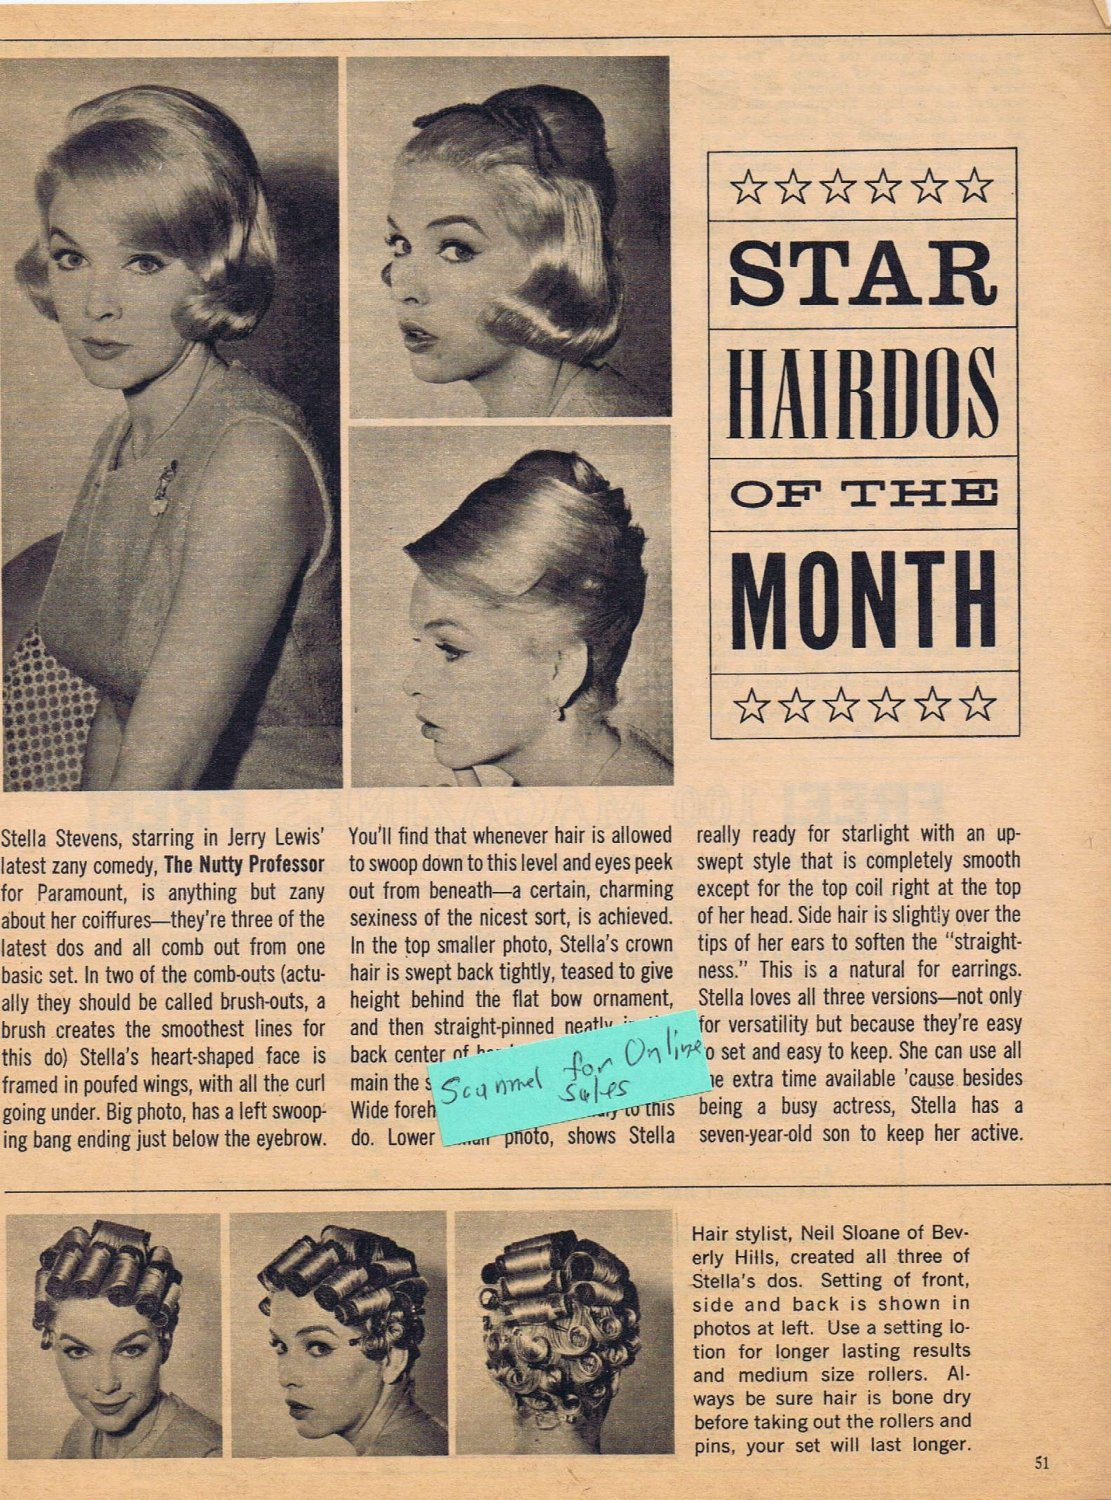 STELLA STEVENS 1963 Hairdos of the Month Feature Styled by Neil Sloane